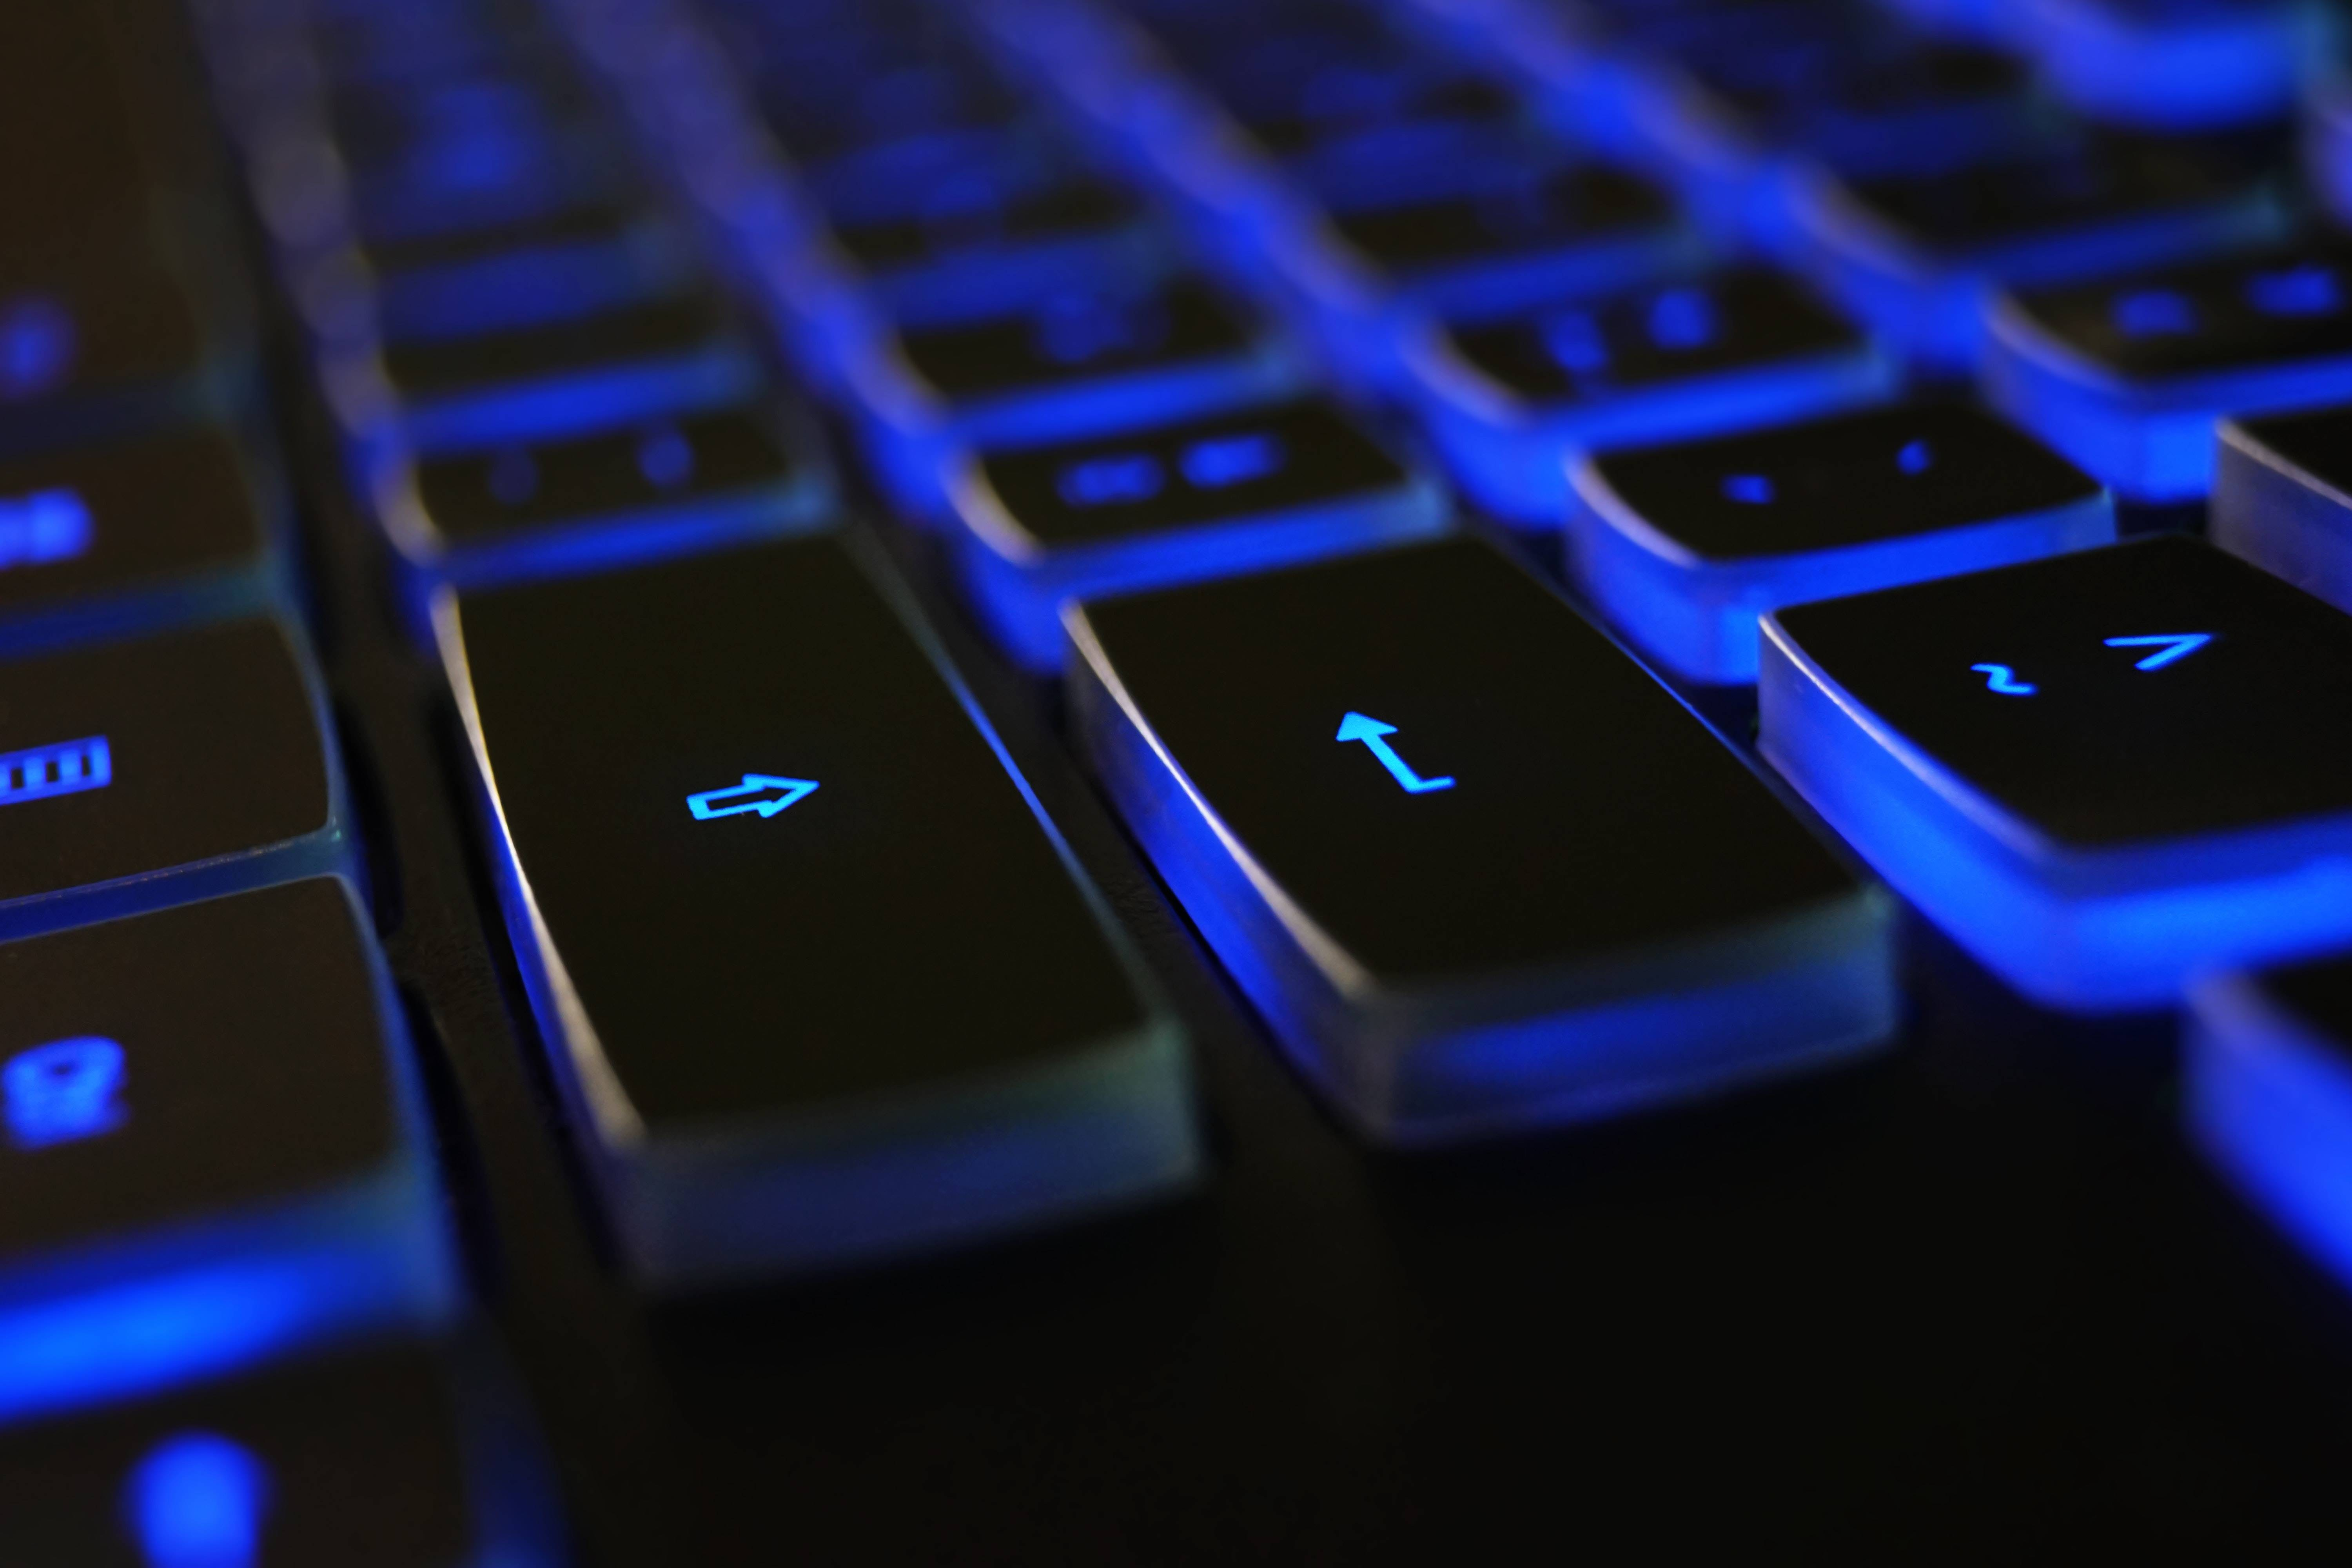 glowing keyboard - shield companies from cybercrime